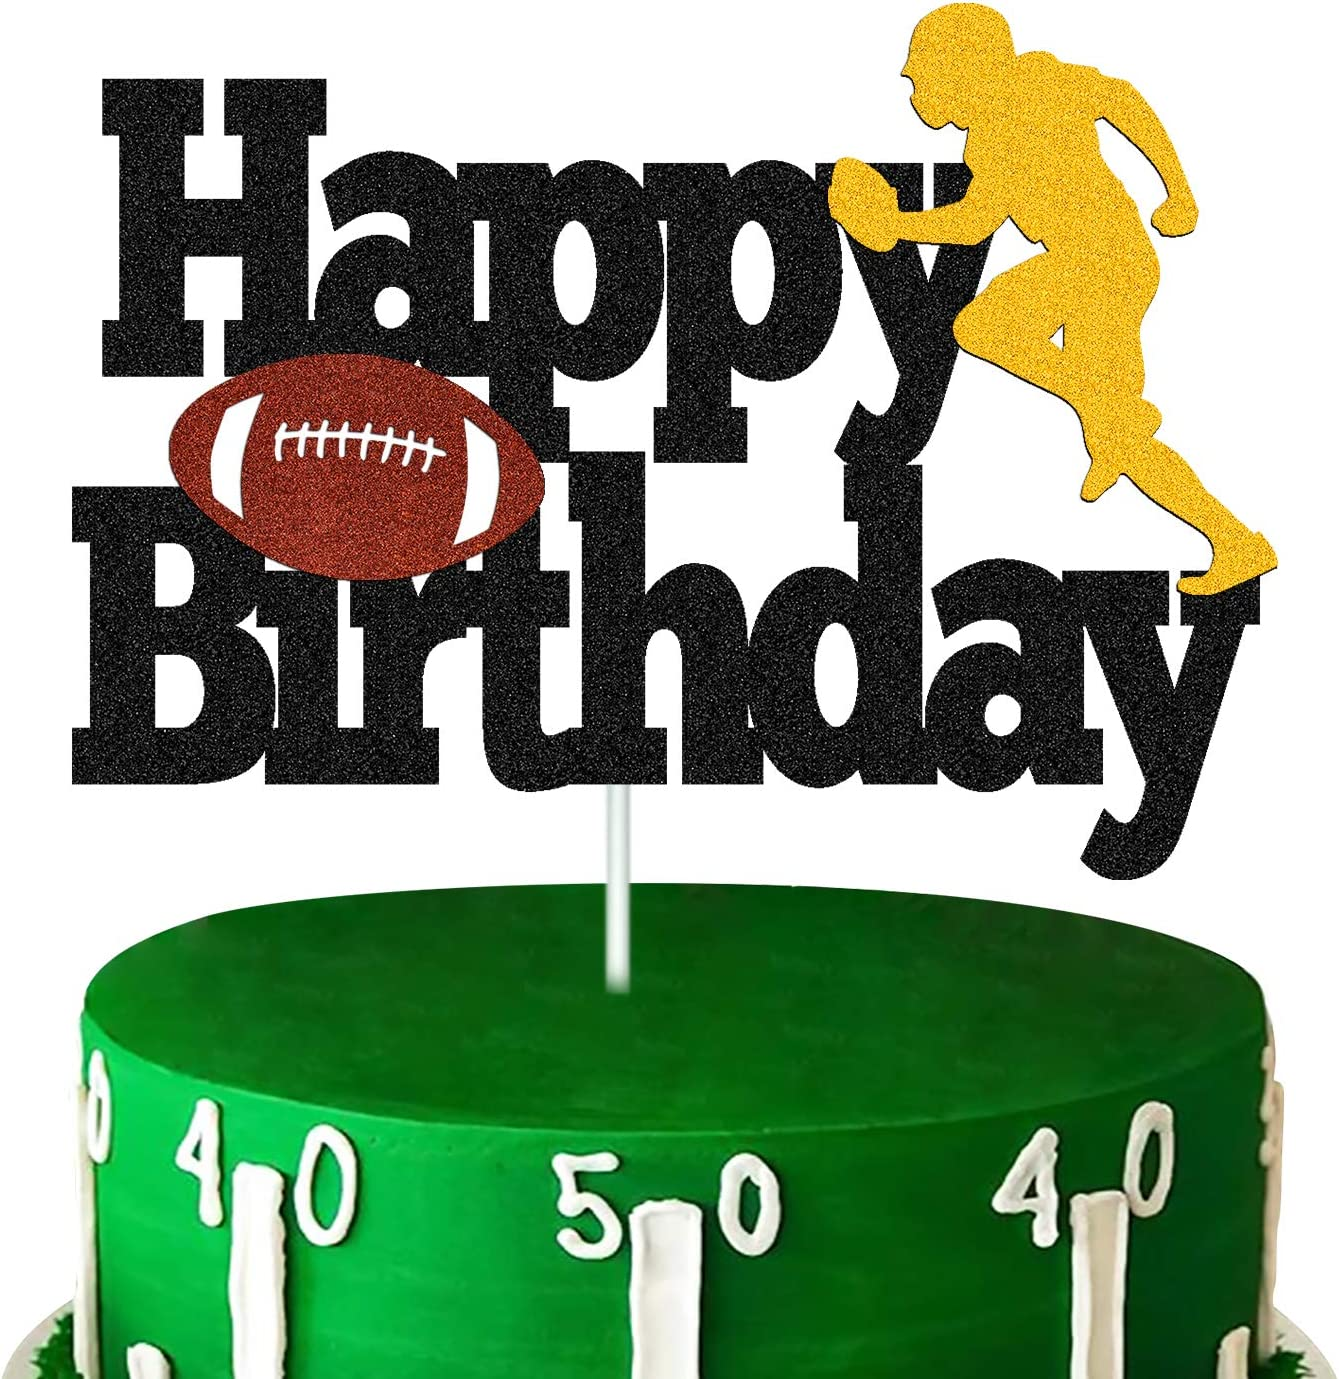 Football Cake Topper Rugby Ball Happy Birthday Cake Decorations for Man Kids Boy Girl Sport Game Day Super Bowl Touchdown Themed Party Supplies Black Sparkle Decor